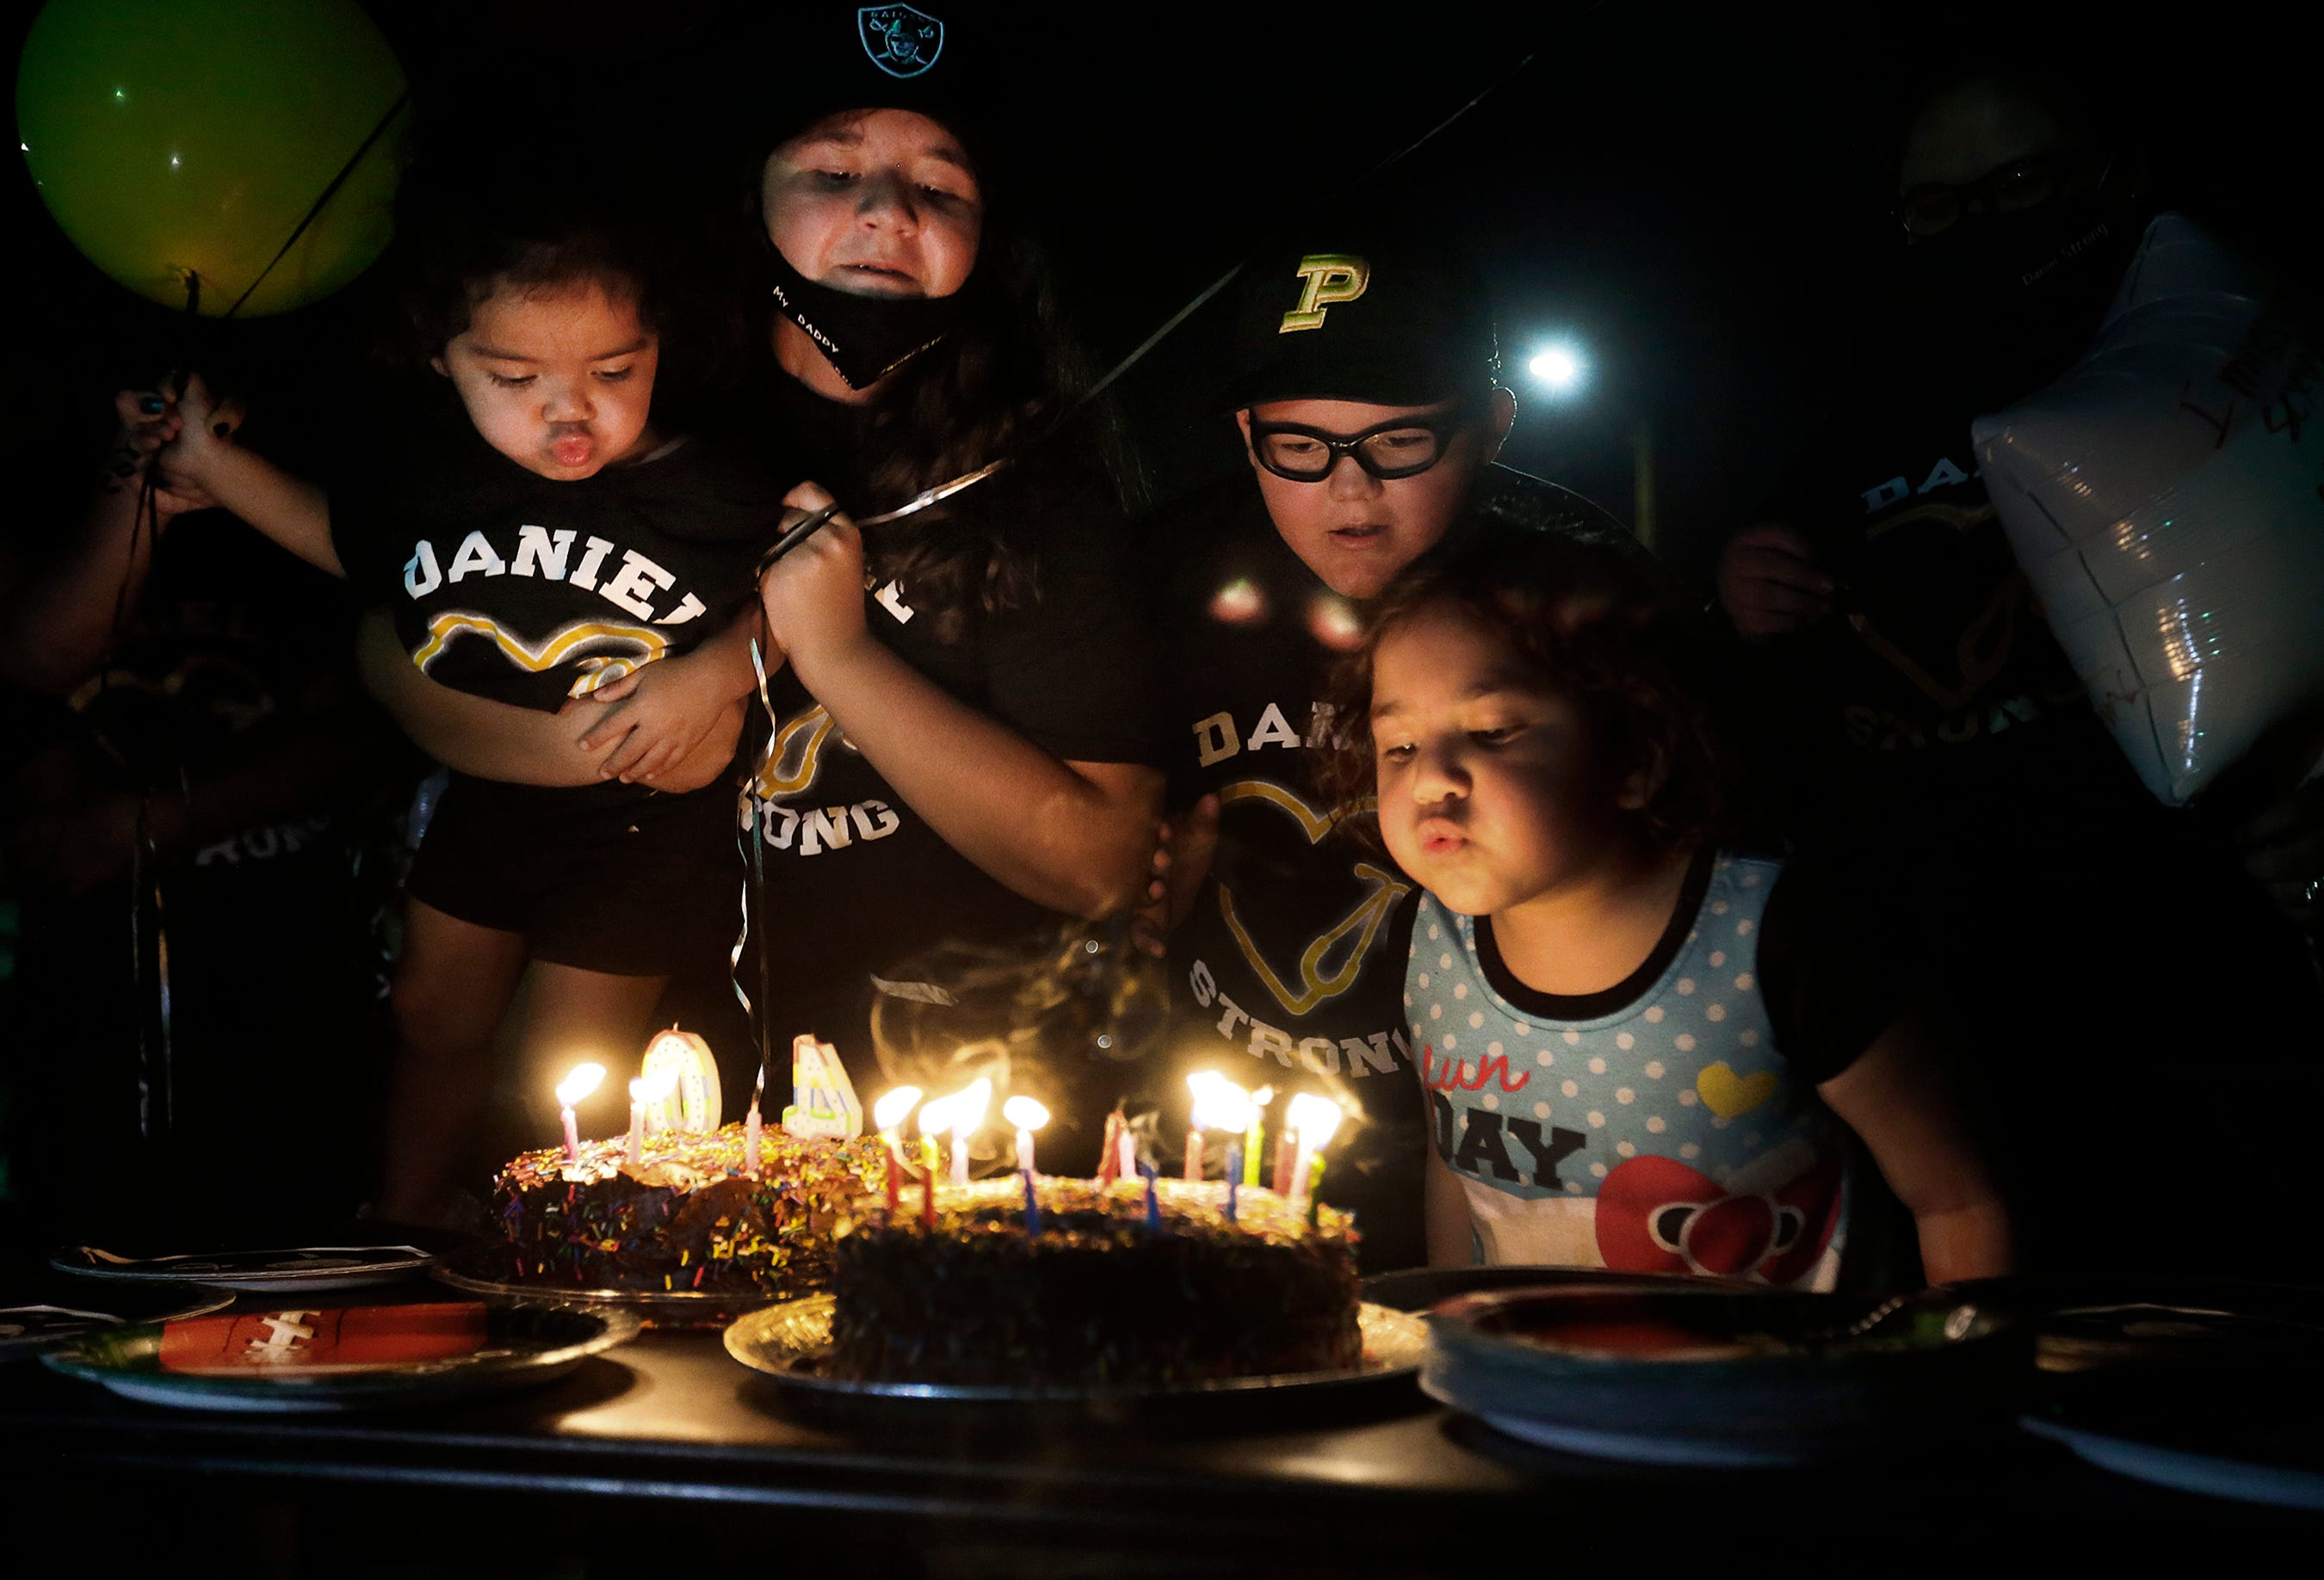 Desiree, from left, Danika, Dominik and Daniella Morales blow candles out to honor their late father Daniel Morales on what would have been his 40th birthday Aug. 21, 2020.